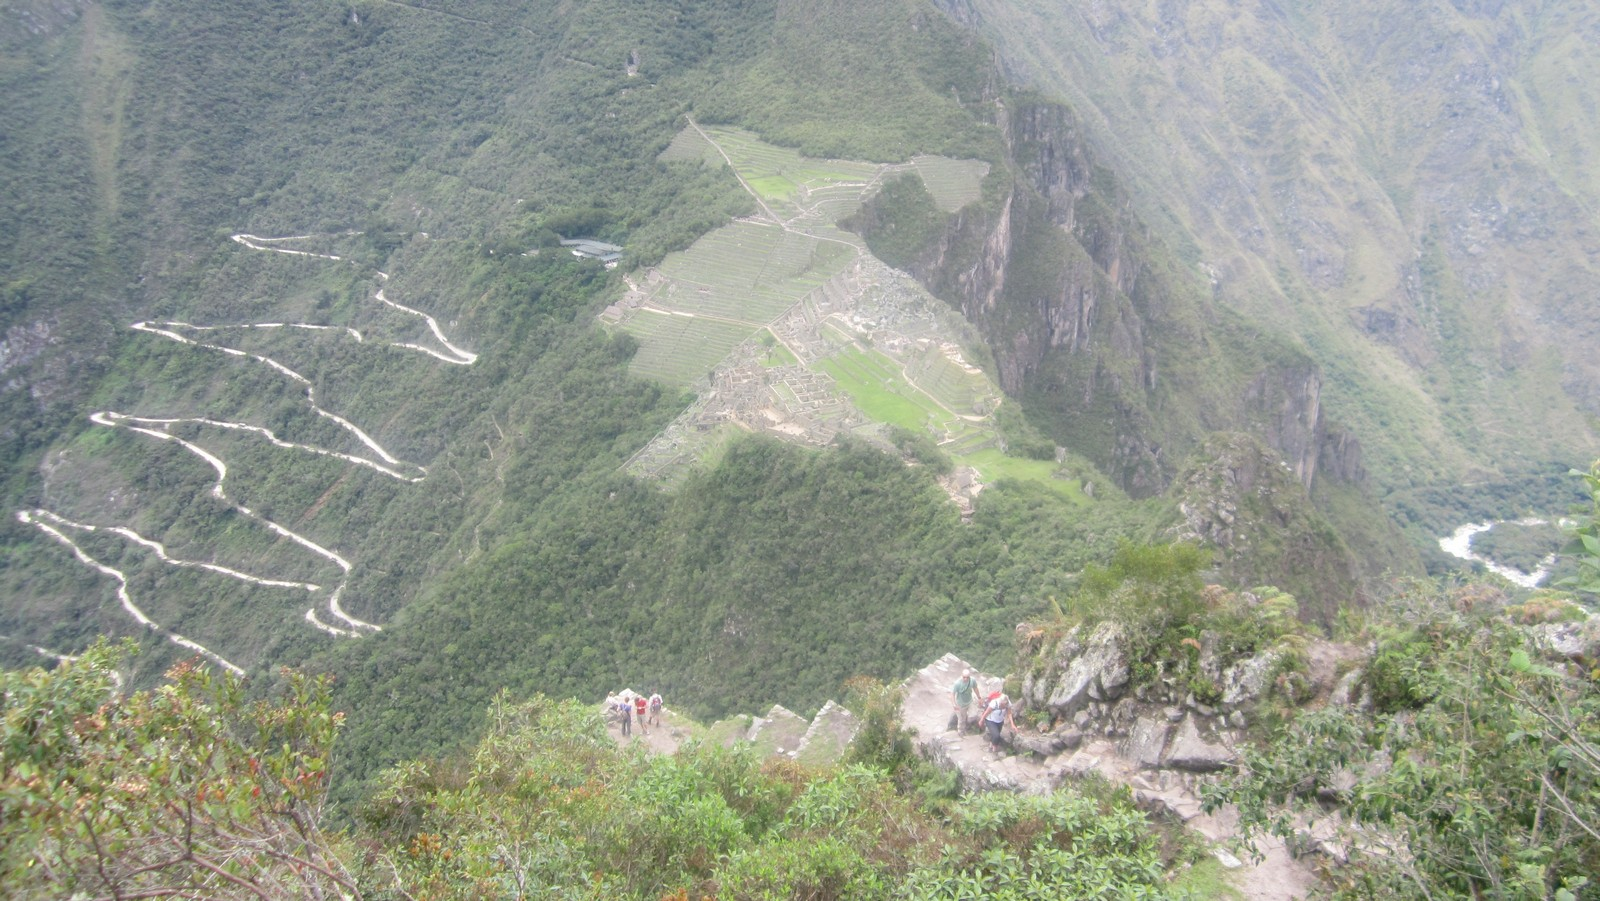 View from Wayna Picchu